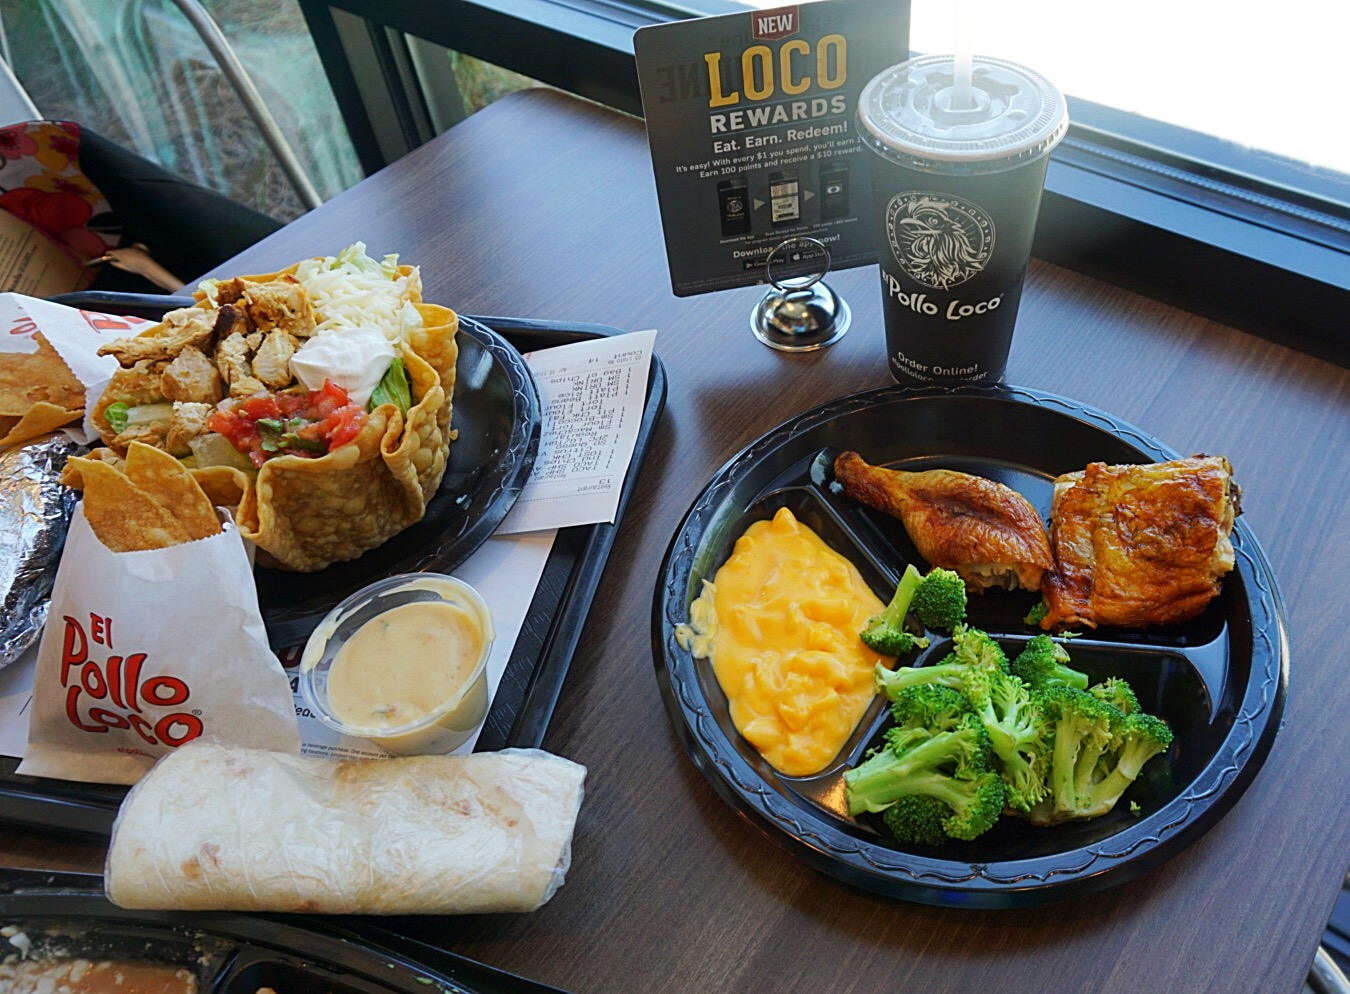 el pollo loco rewards